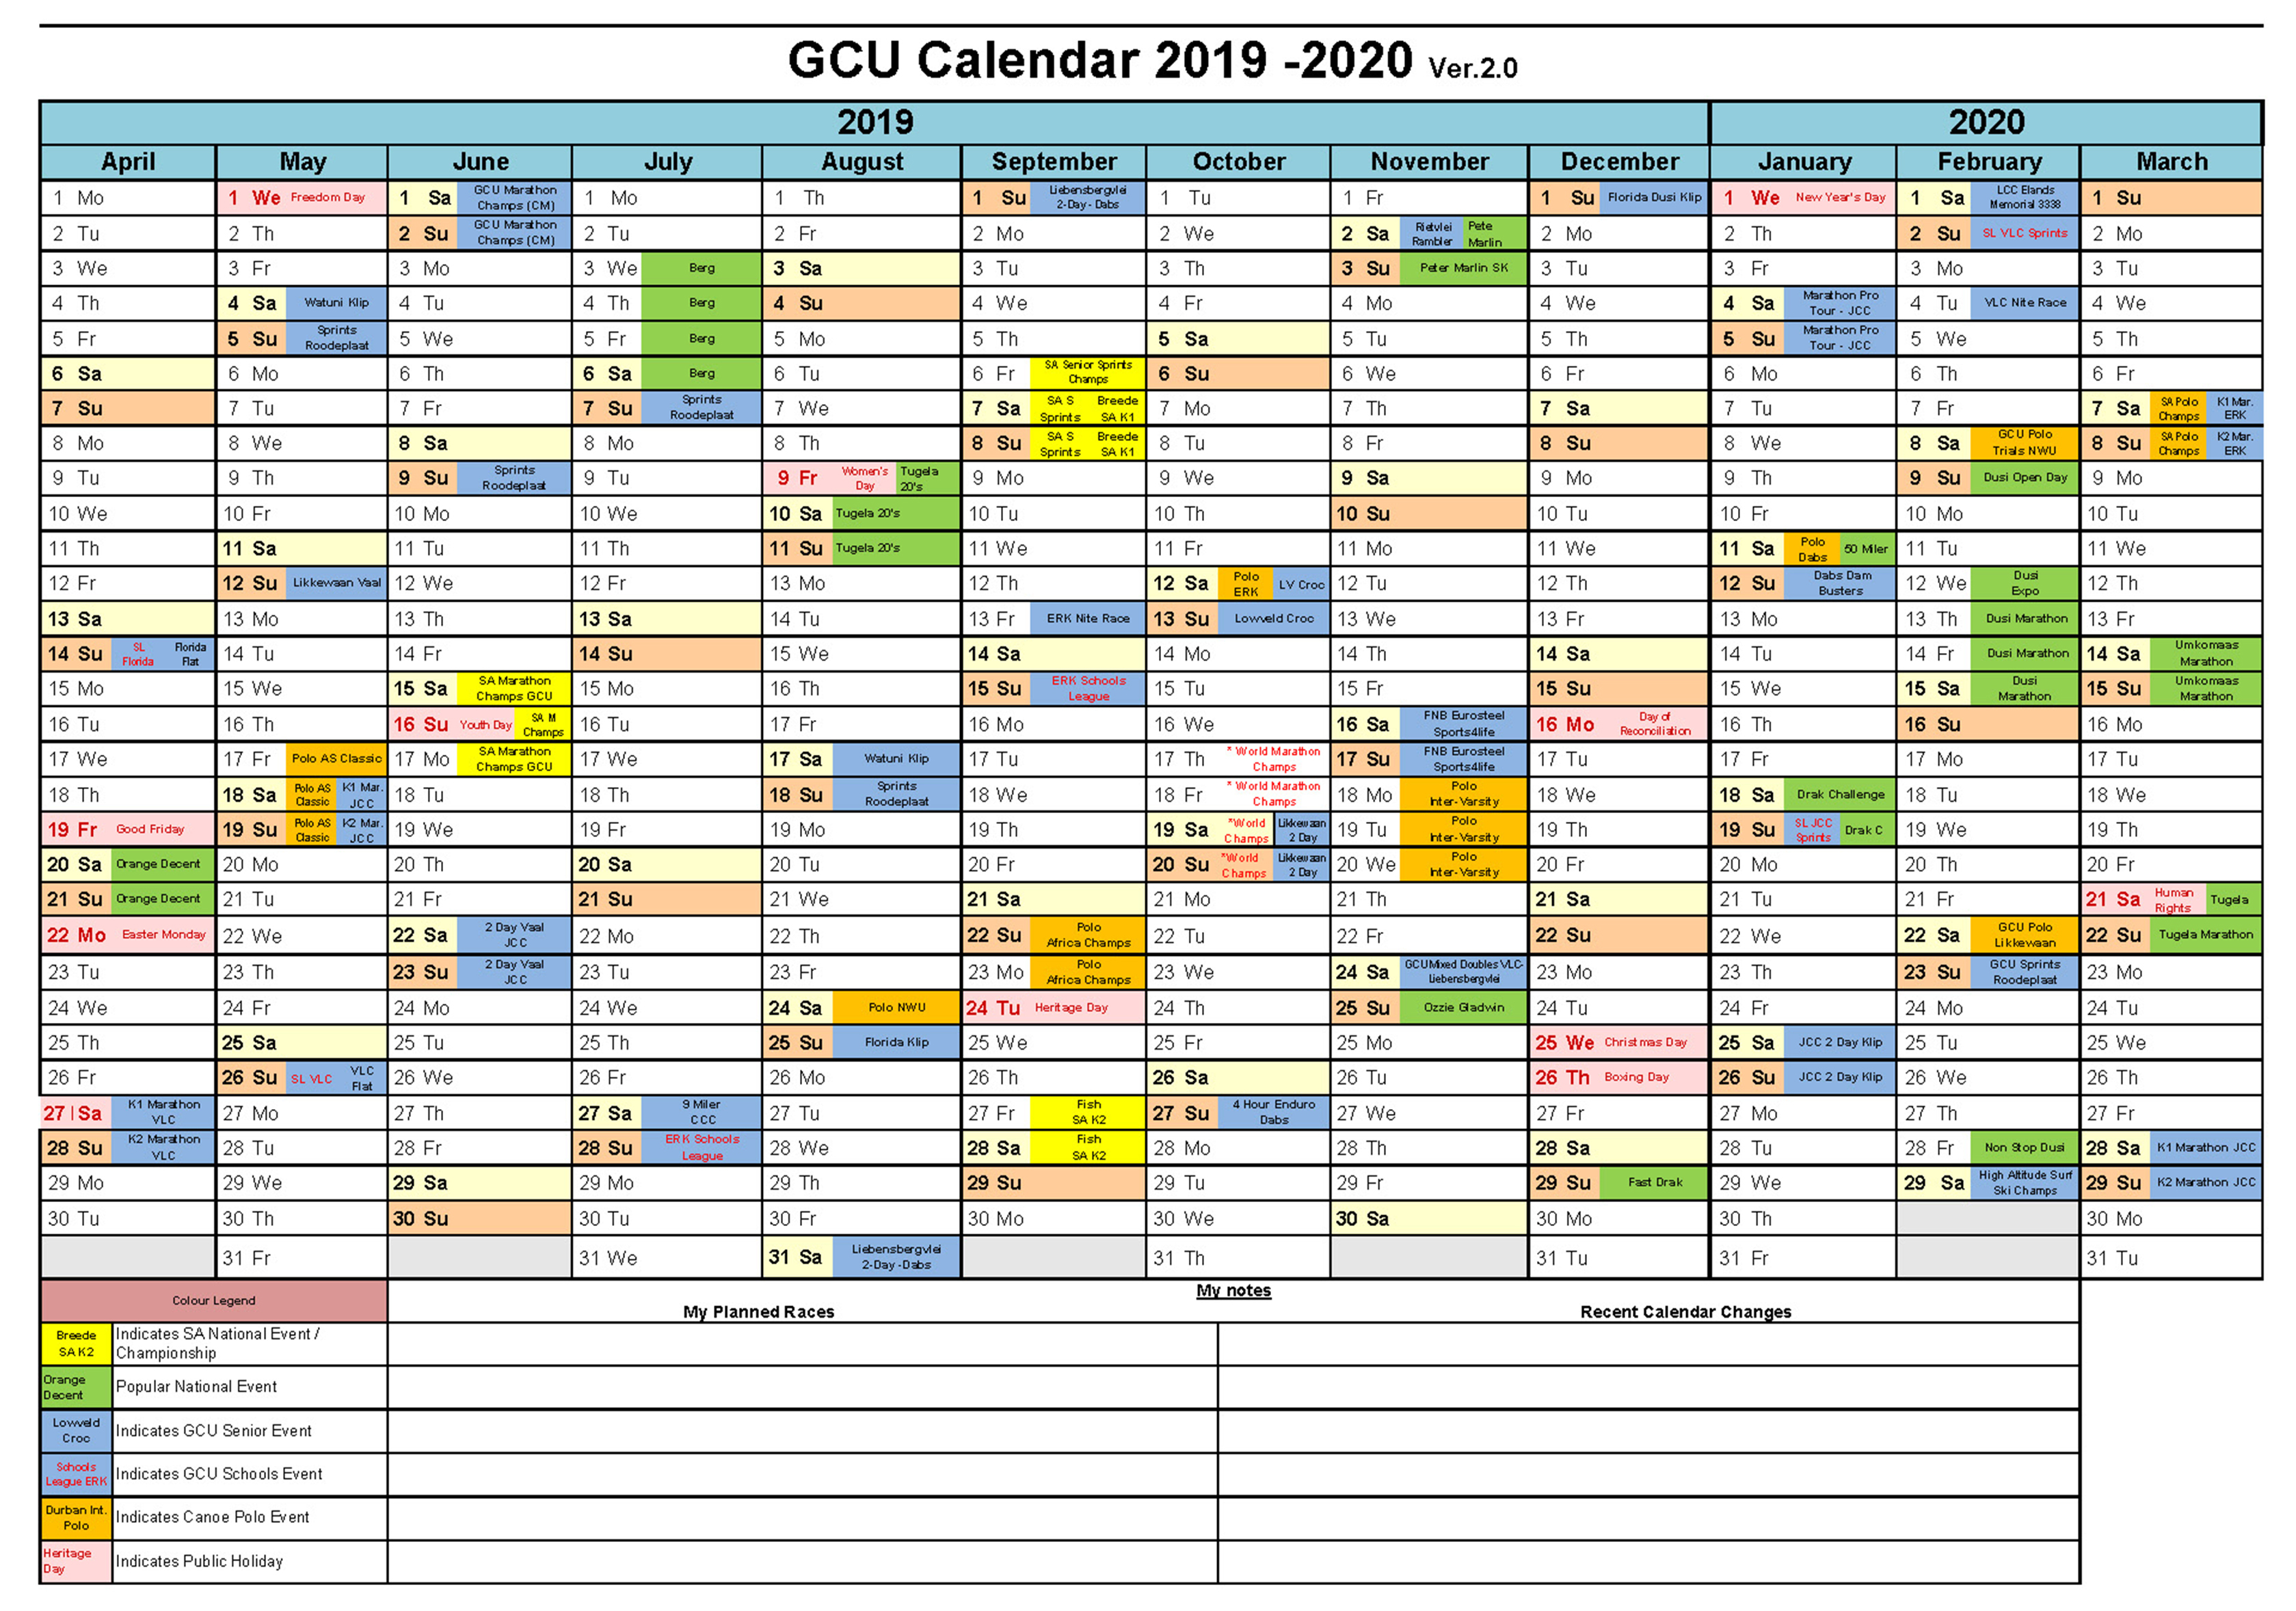 Gcu Calendar-2019-2020 | Gauteng Canoe Union with regard to 2020 Gcu Academic Calendar